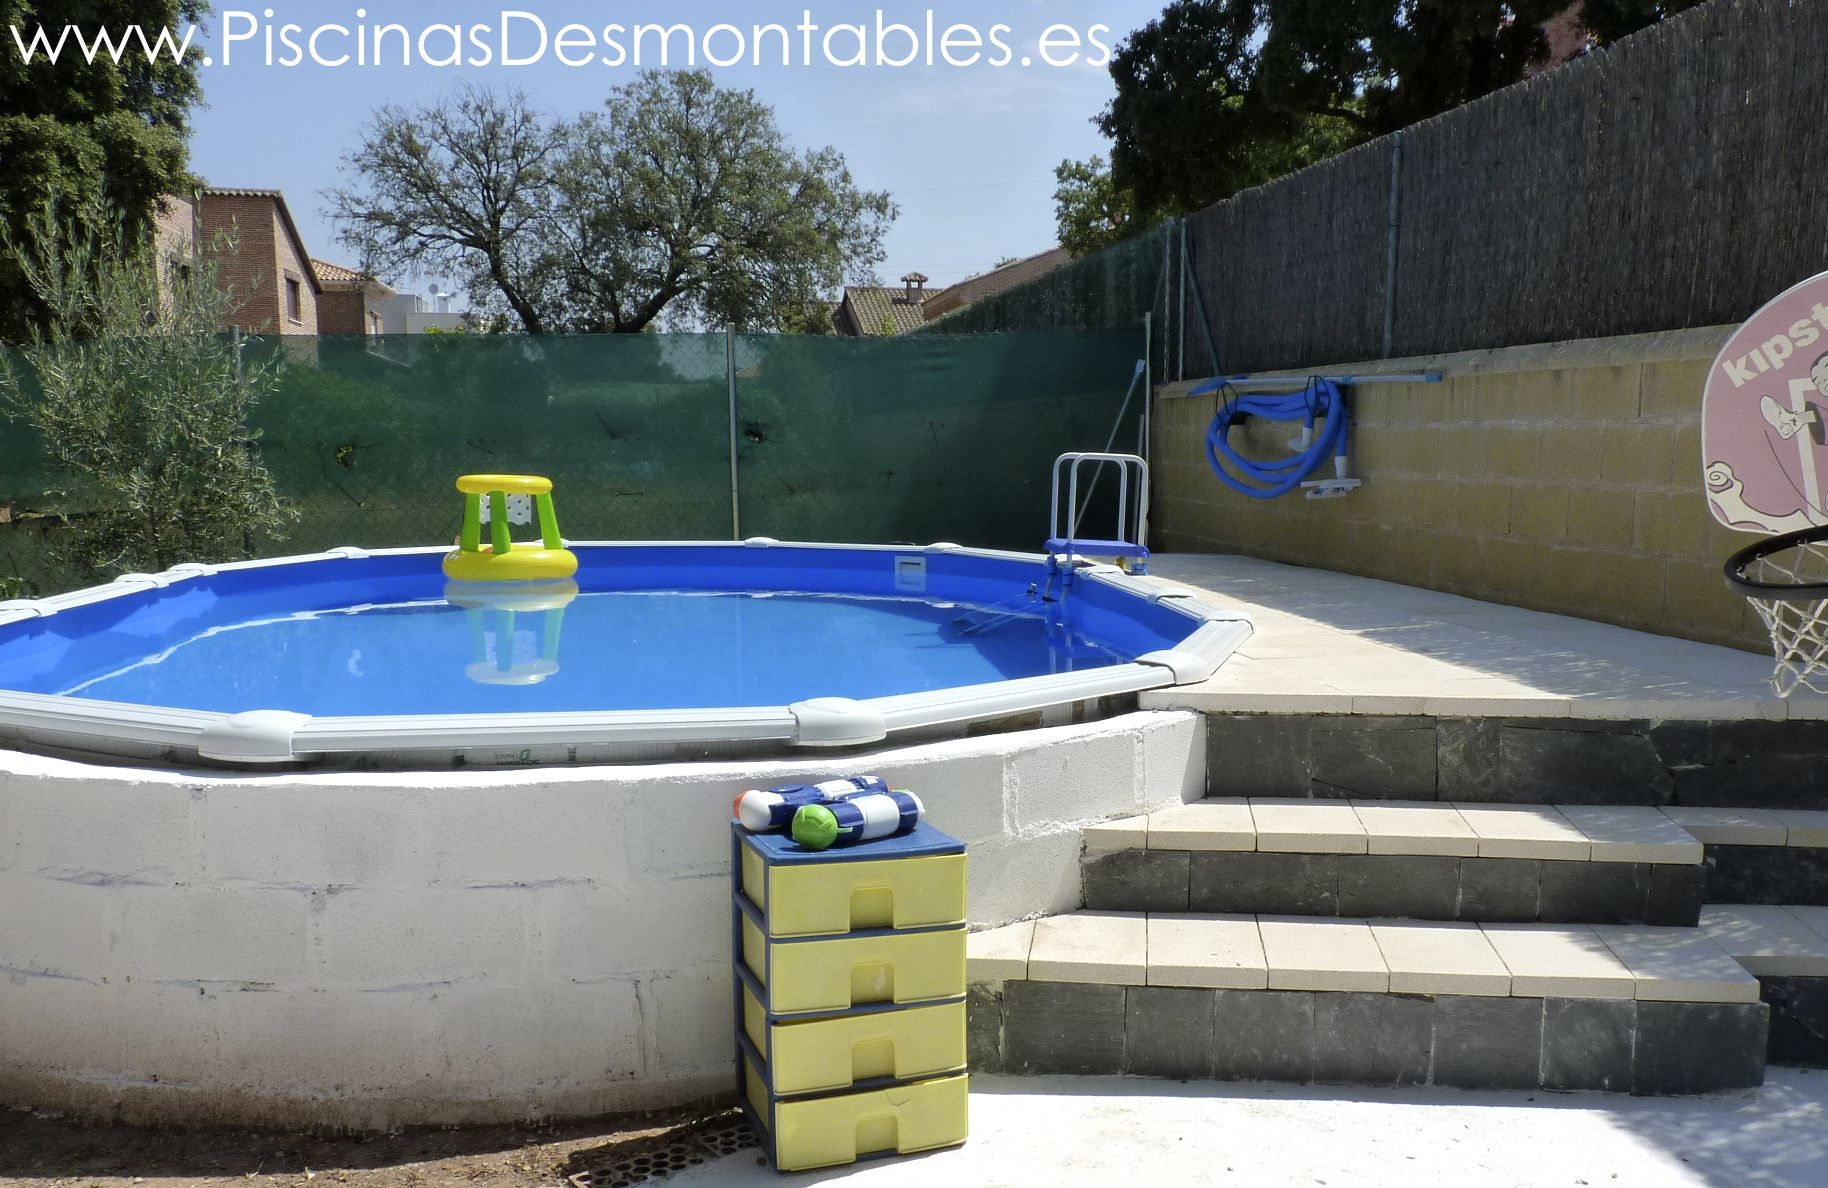 Piscina gre de 610x375x132cm serie atlantis semi enterrada for Escaleras para piscinas desmontables